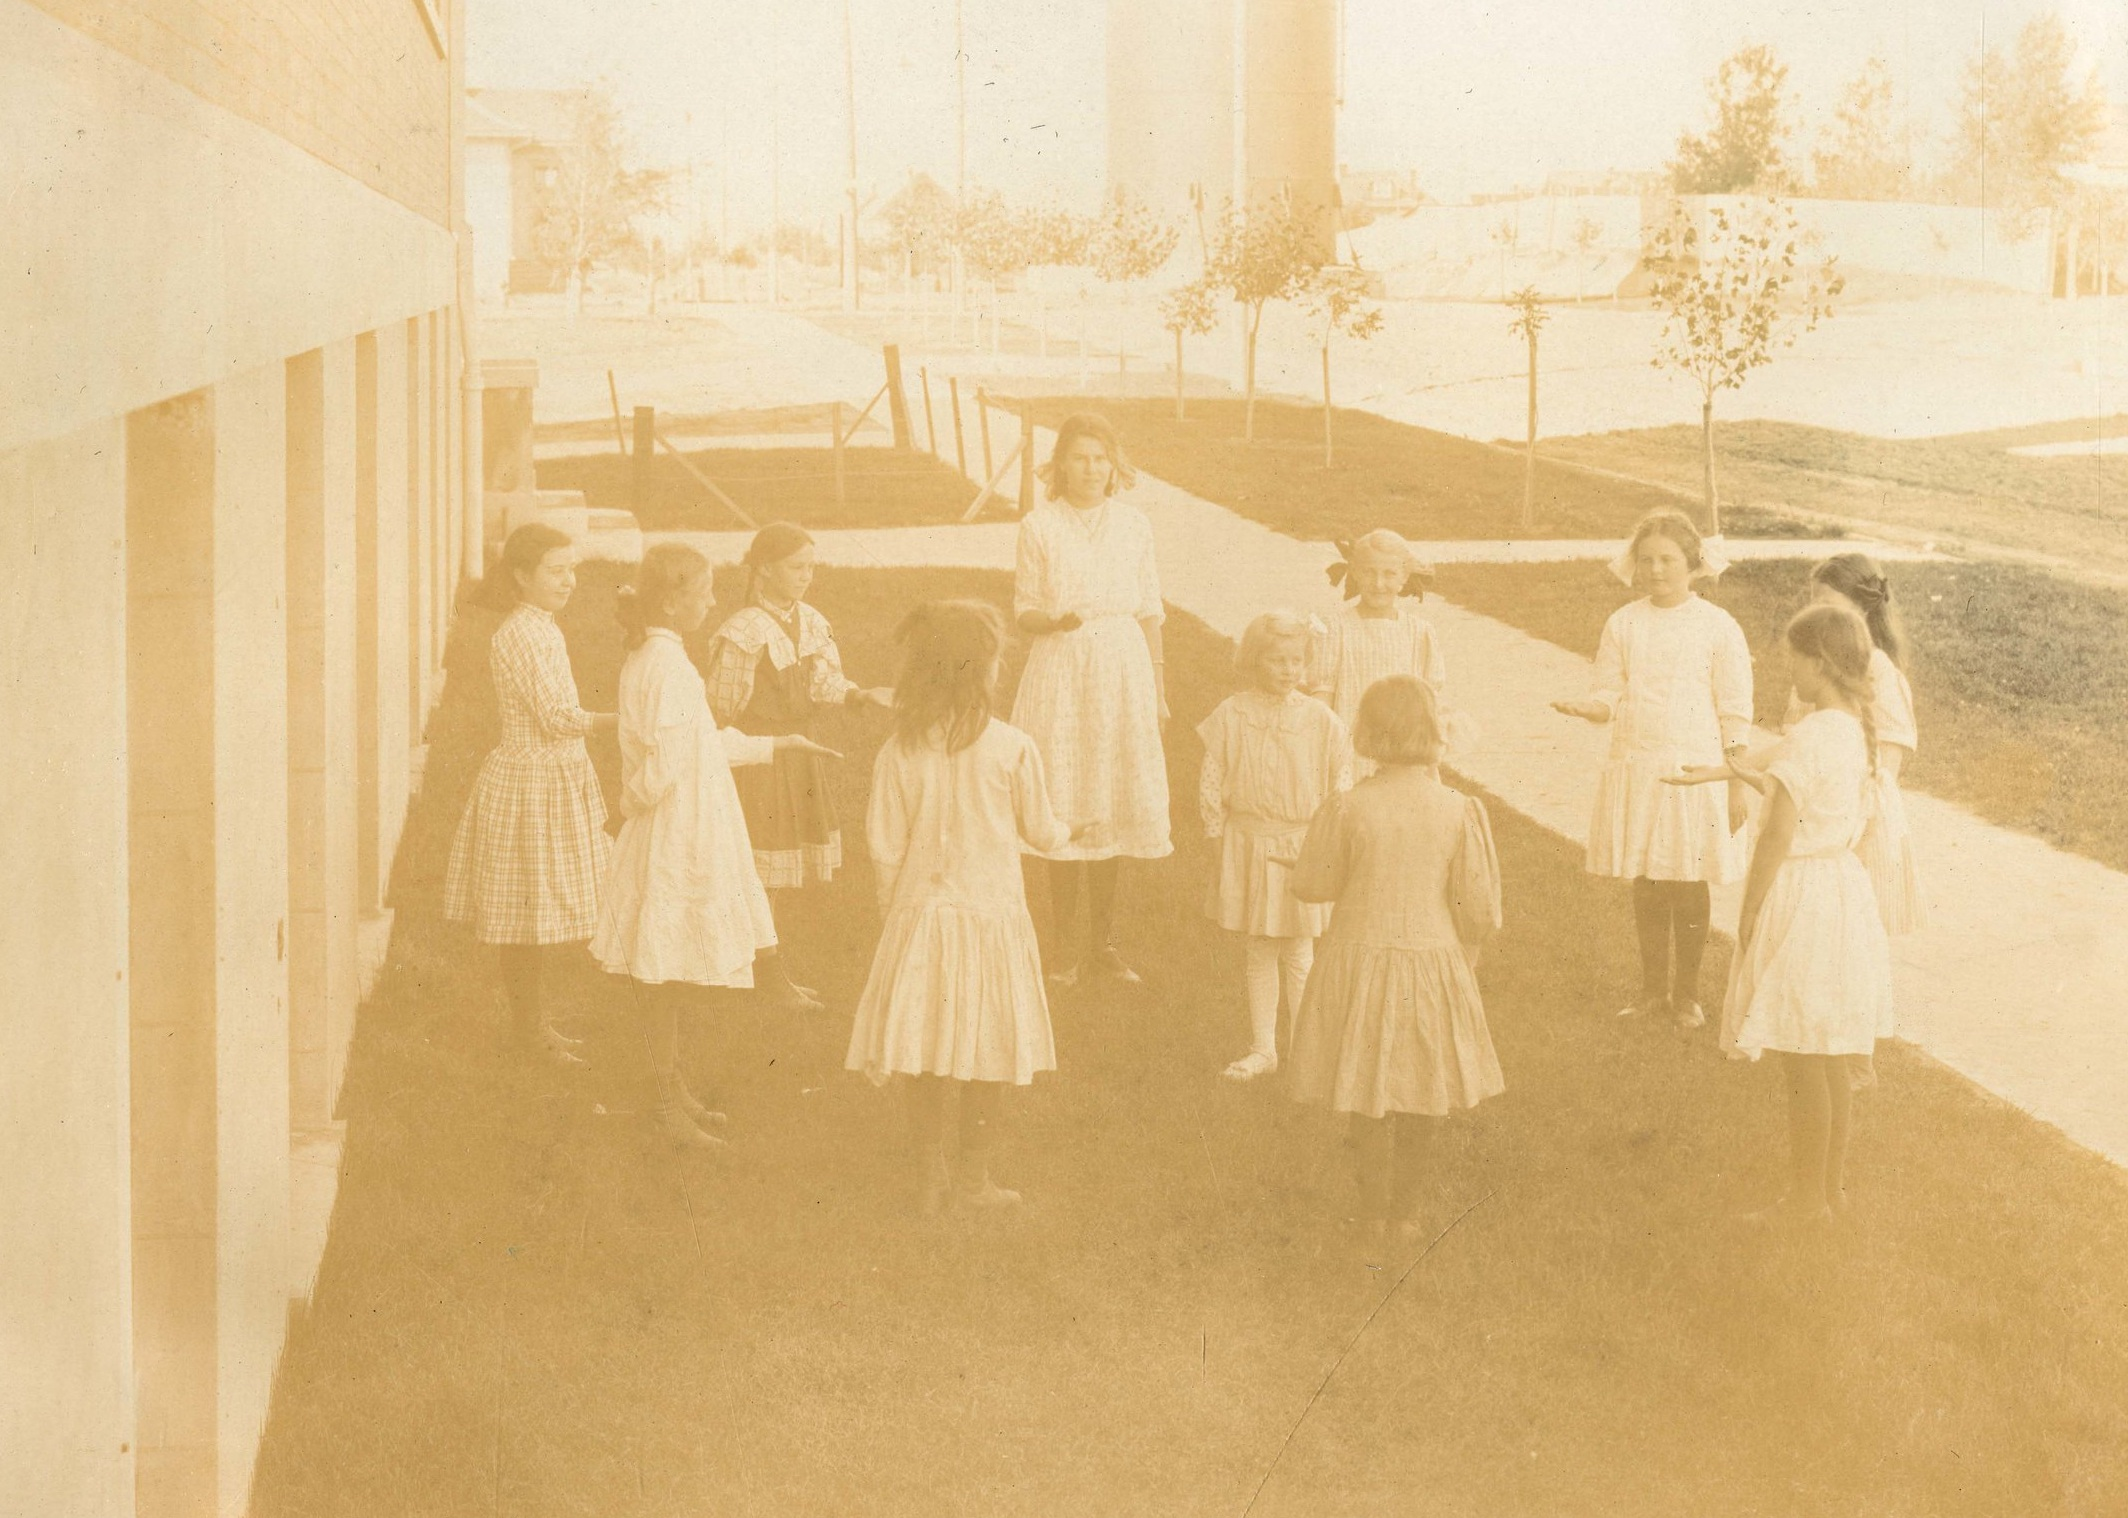 Courtesy the Galt Museum & Archives: 20141083031